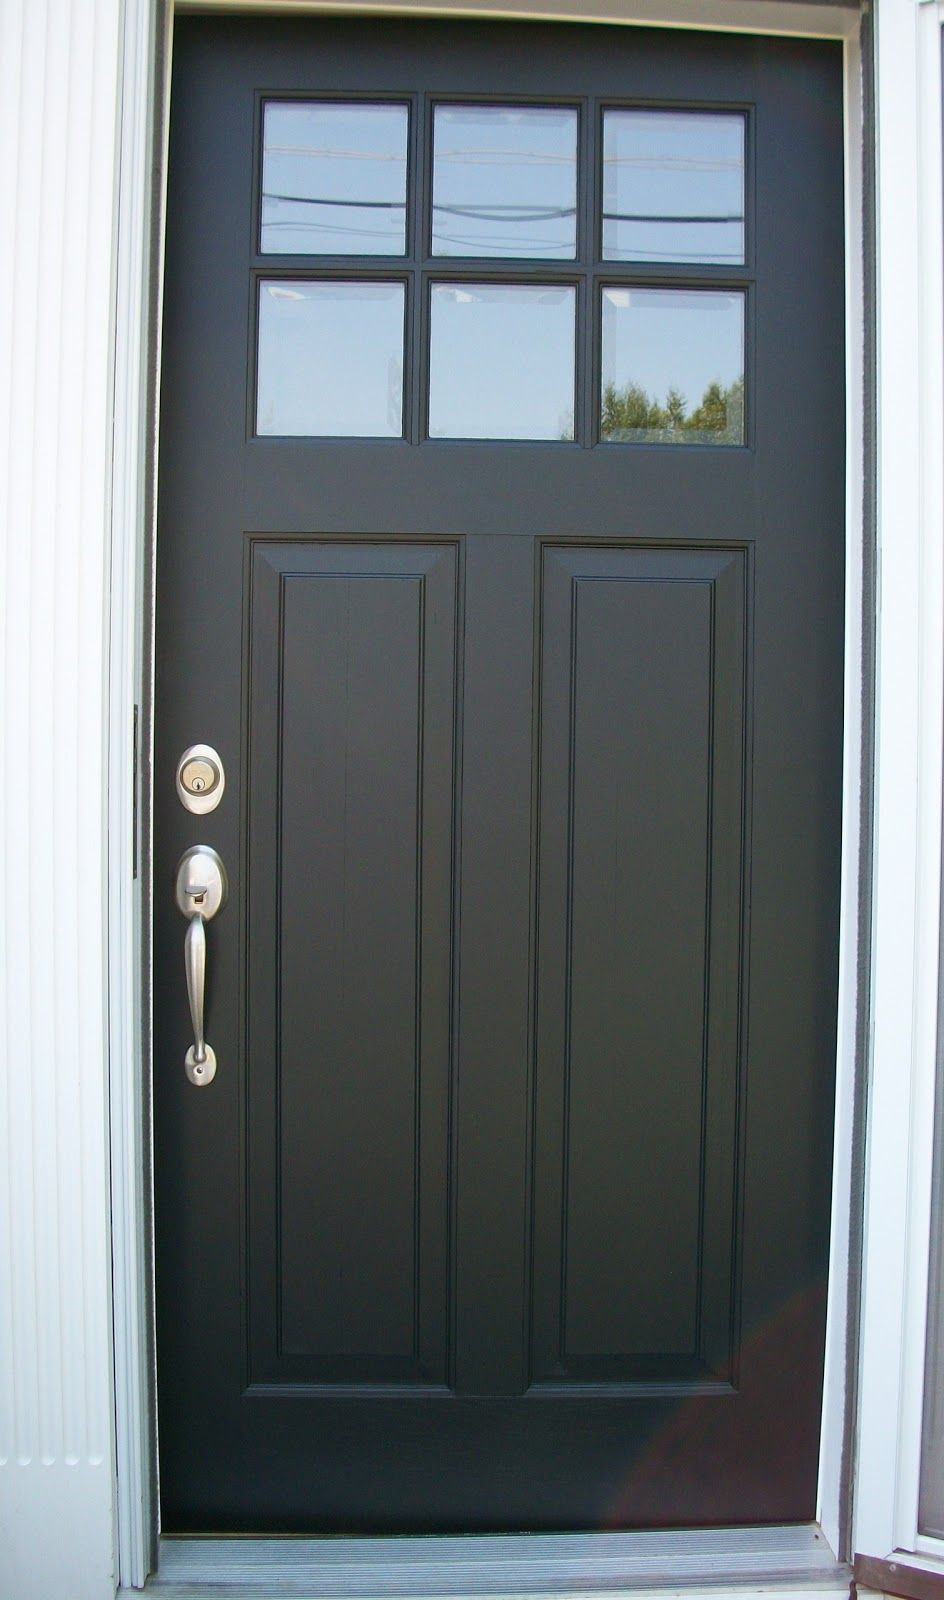 Front doors colors that look good with grey siding storm door front doors colors that look good with grey siding storm door looks and i m thinking rubansaba